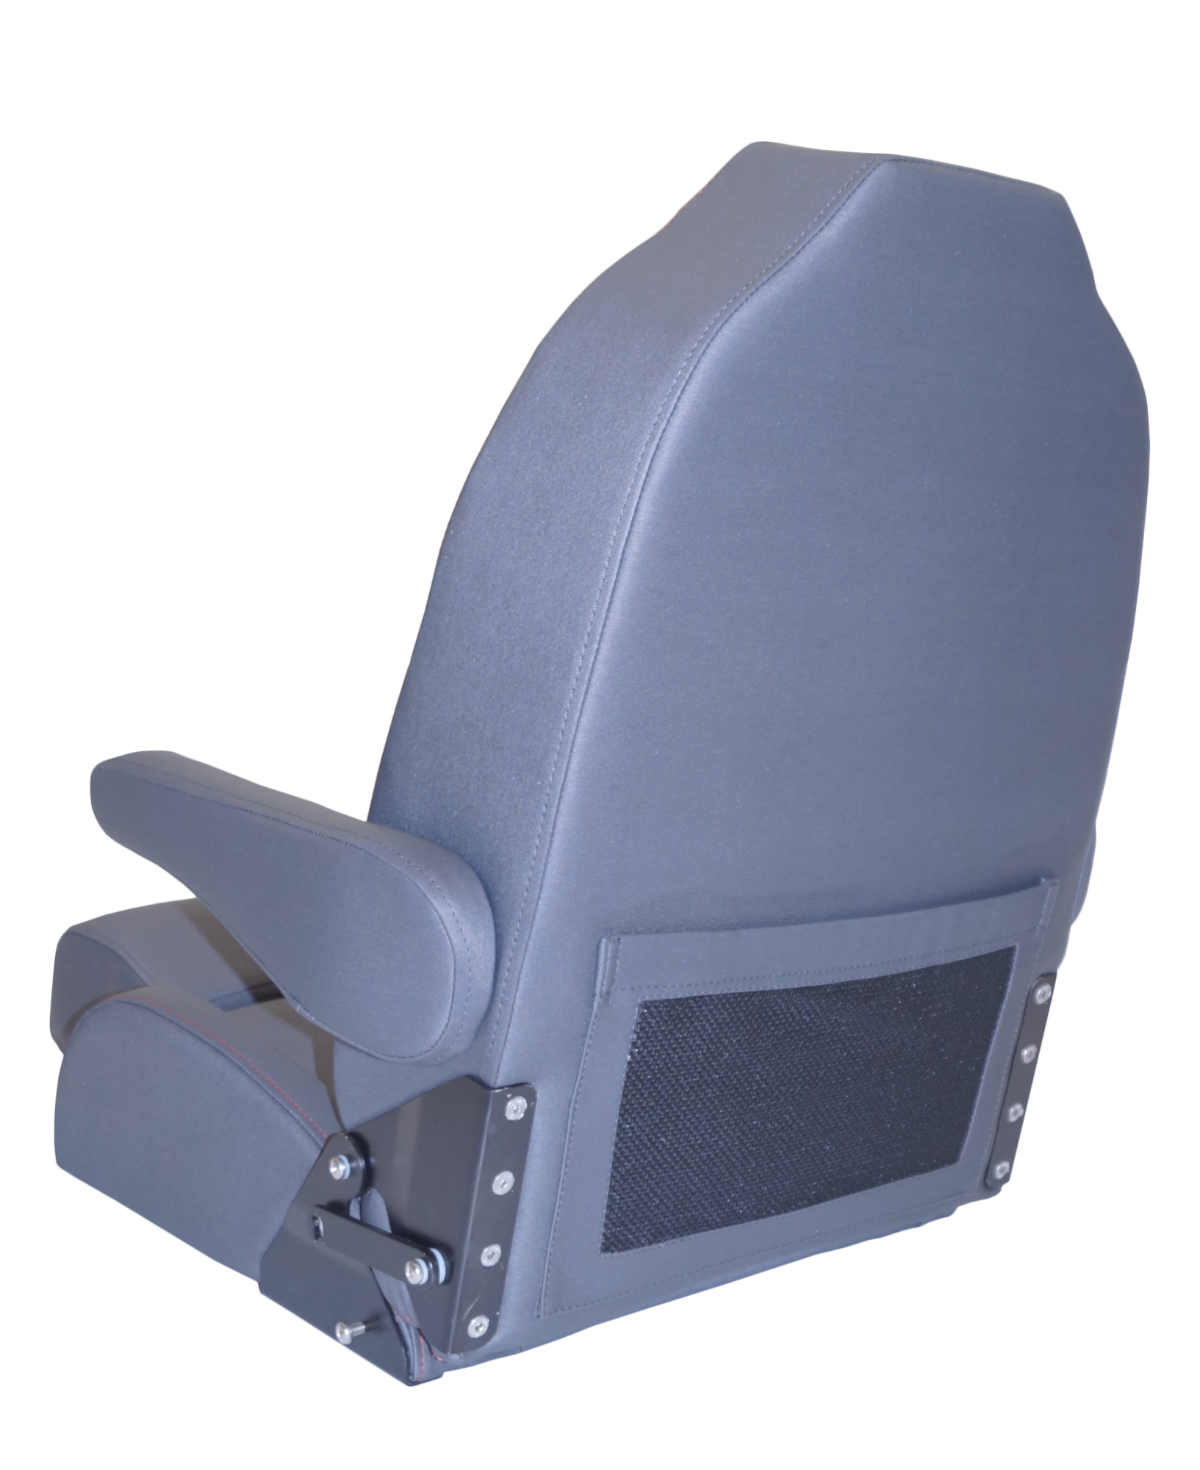 BOAT SEATS - cushions, pilot seats, canopies and stainless